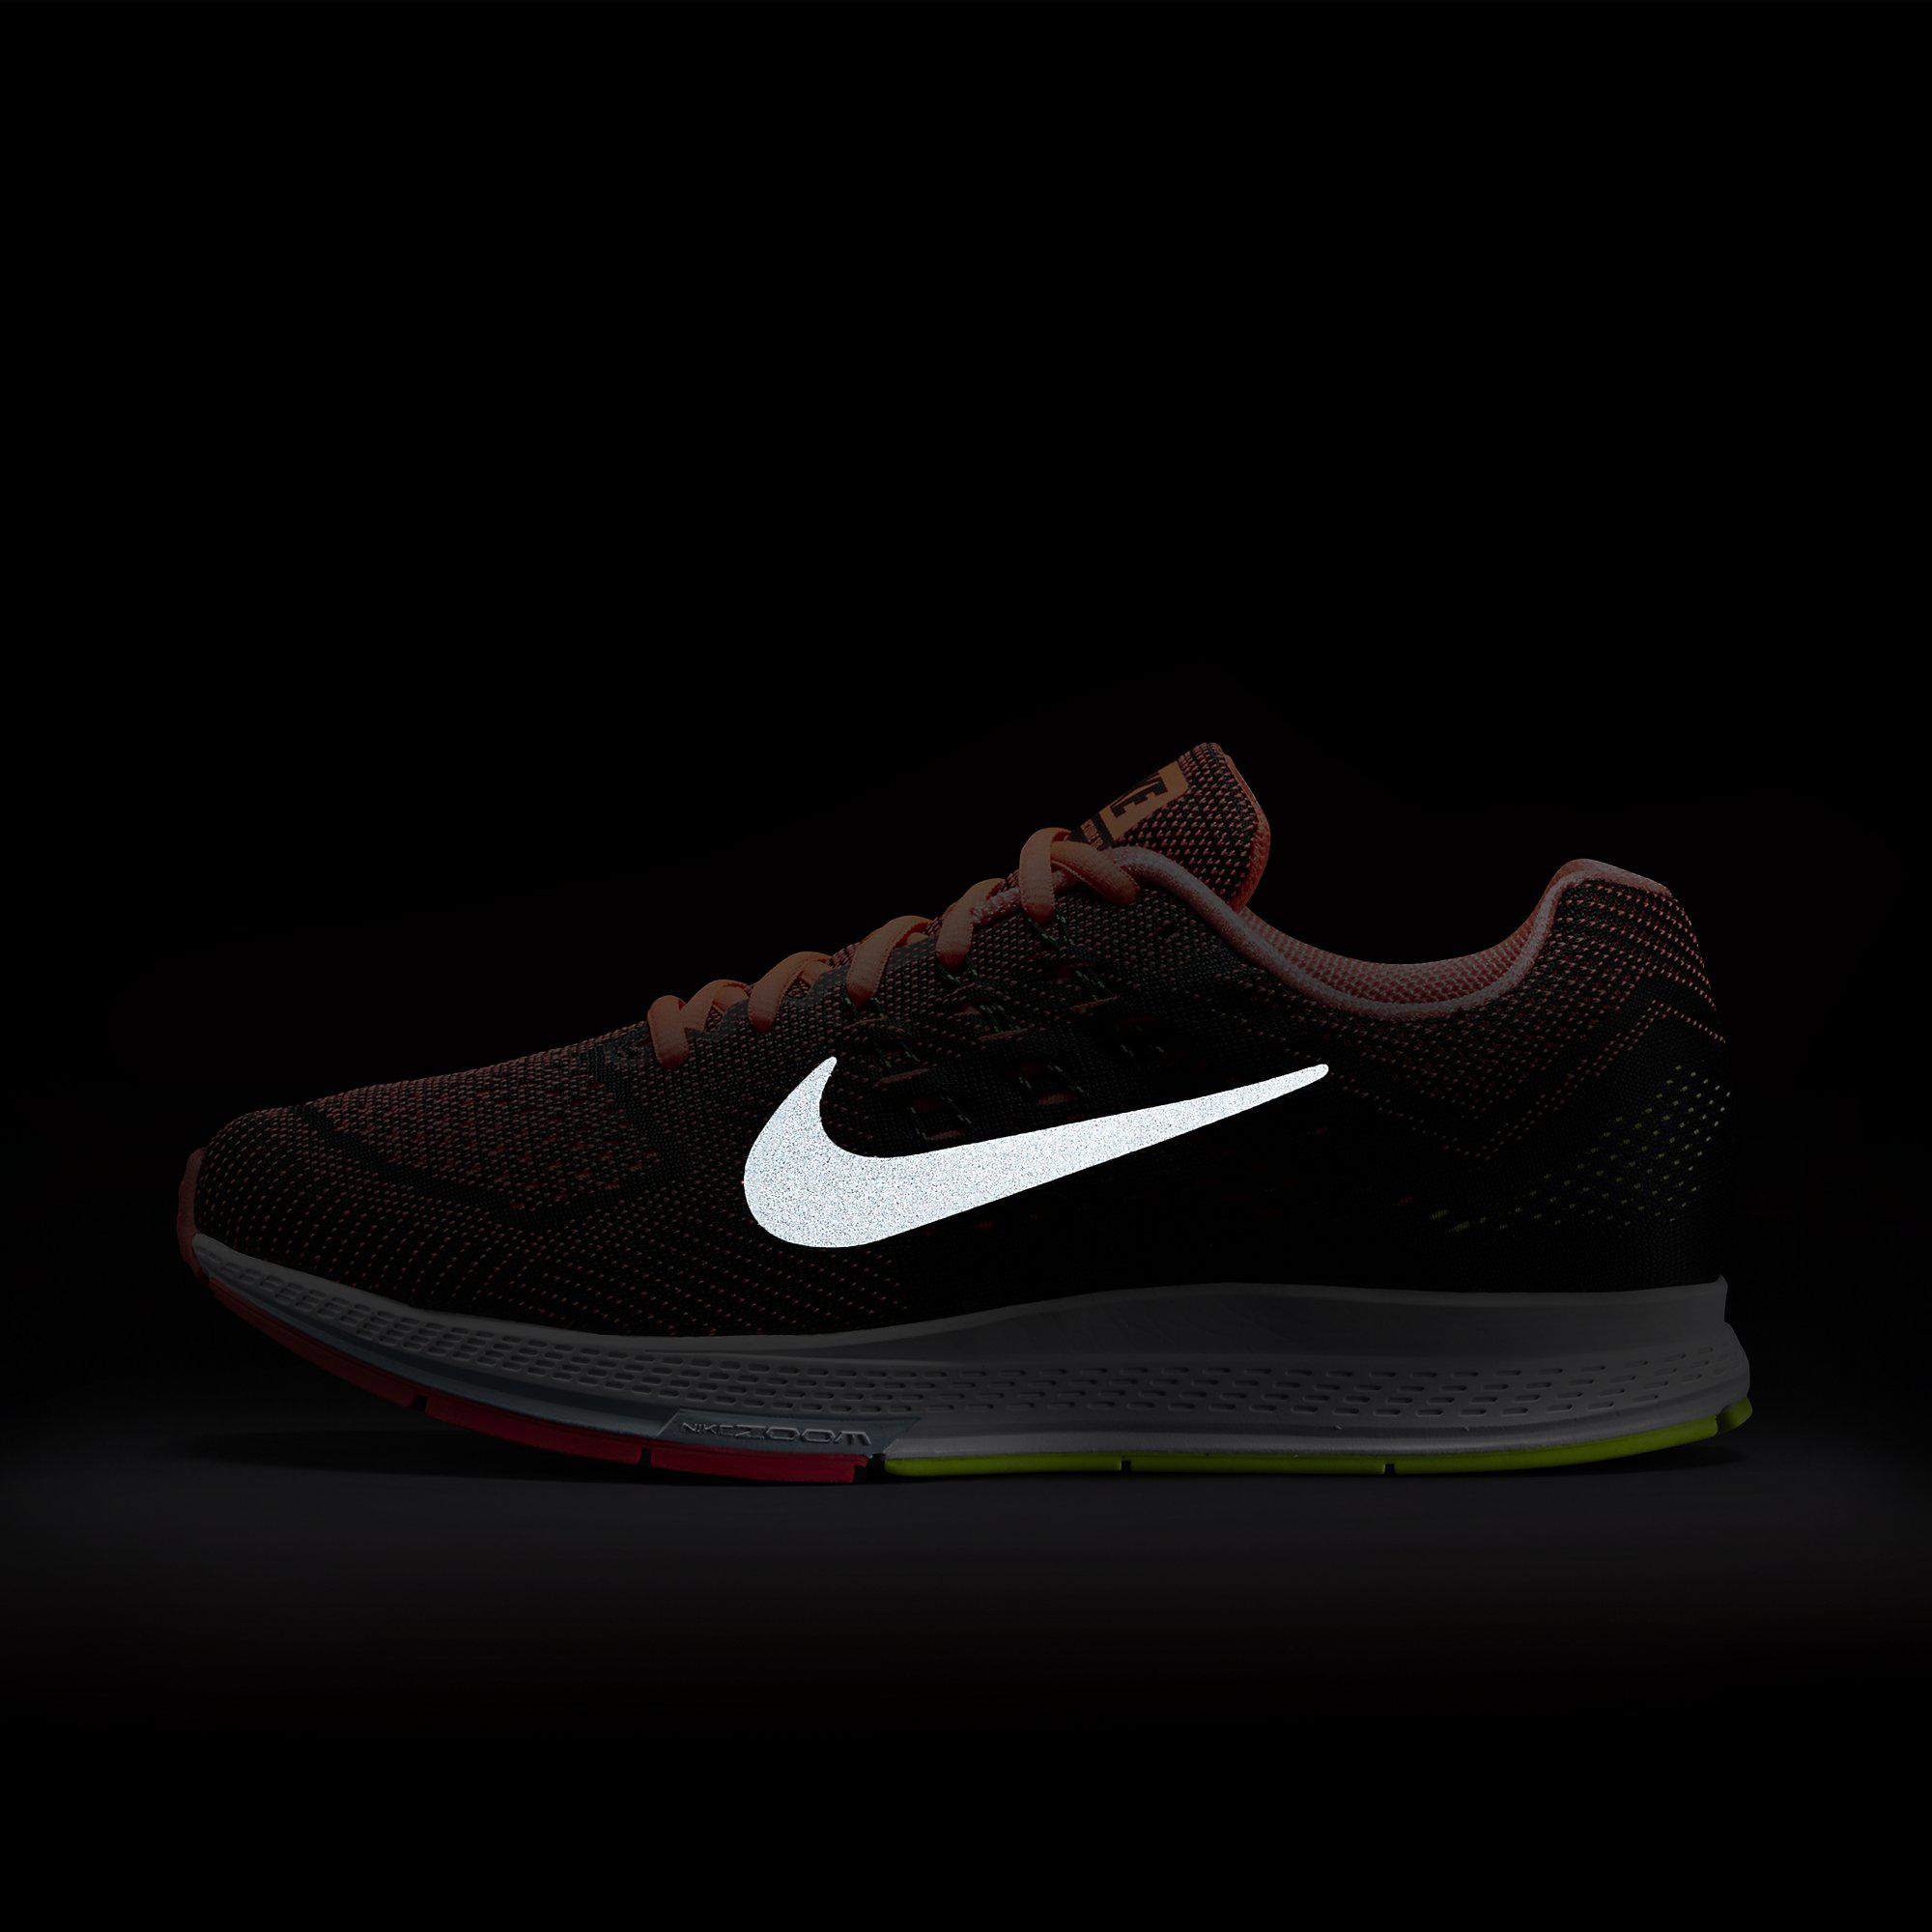 premium selection ce0de eebfe ... france nike mens air zoom structure 18 running shoes hot lava black  e3a97 afd3a